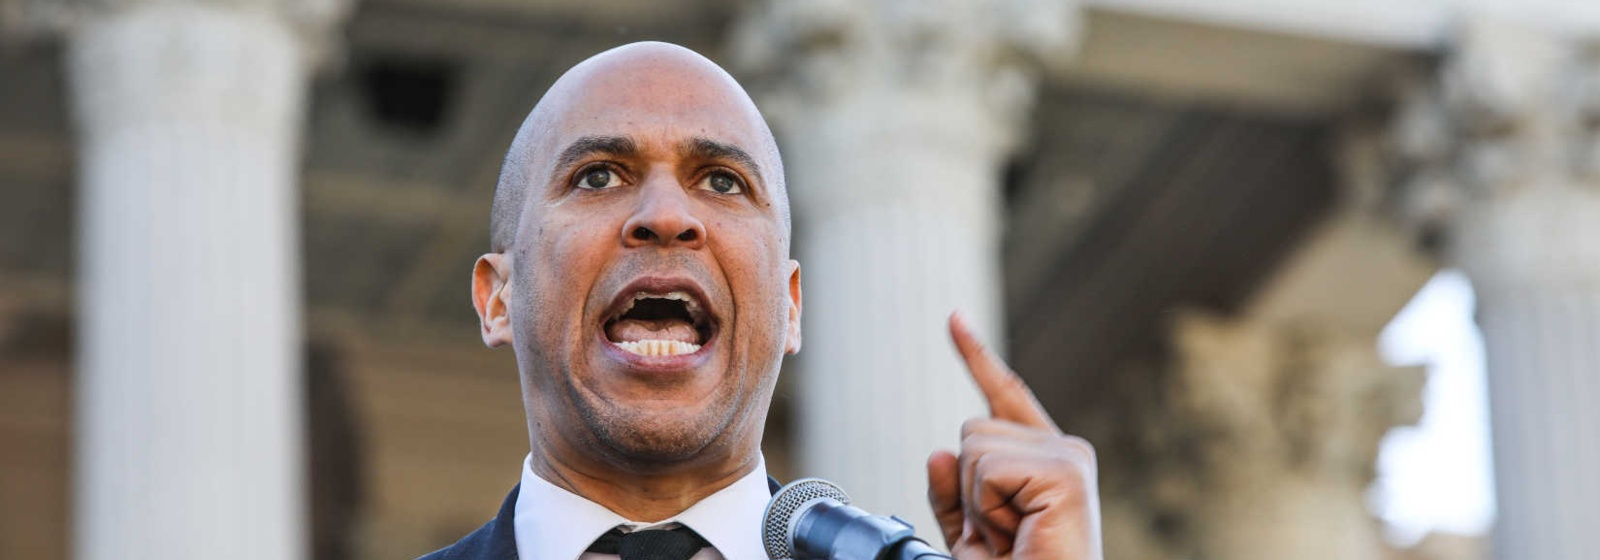 Will Someone Please Explain to Me What Cory Booker's Constant 2A Attacks Are About?